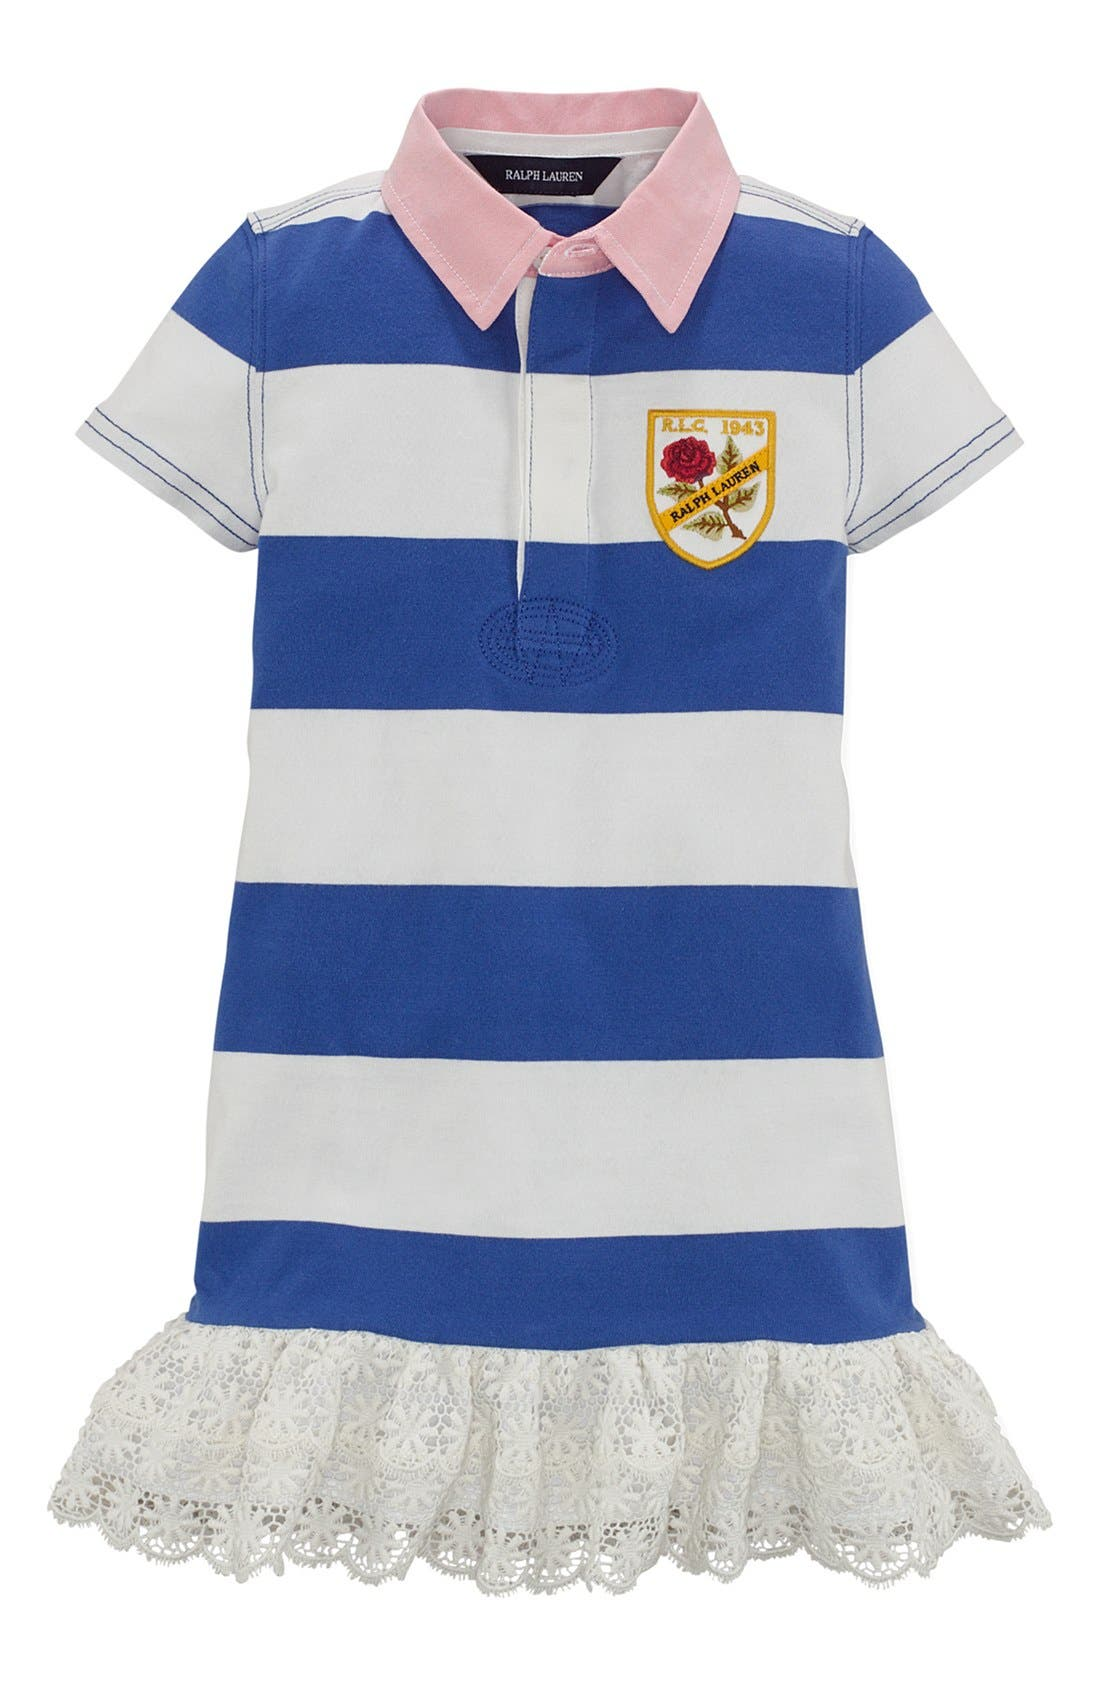 Alternate Image 1 Selected - Ralph Lauren Jersey Rugby Dress (Toddler Girls)